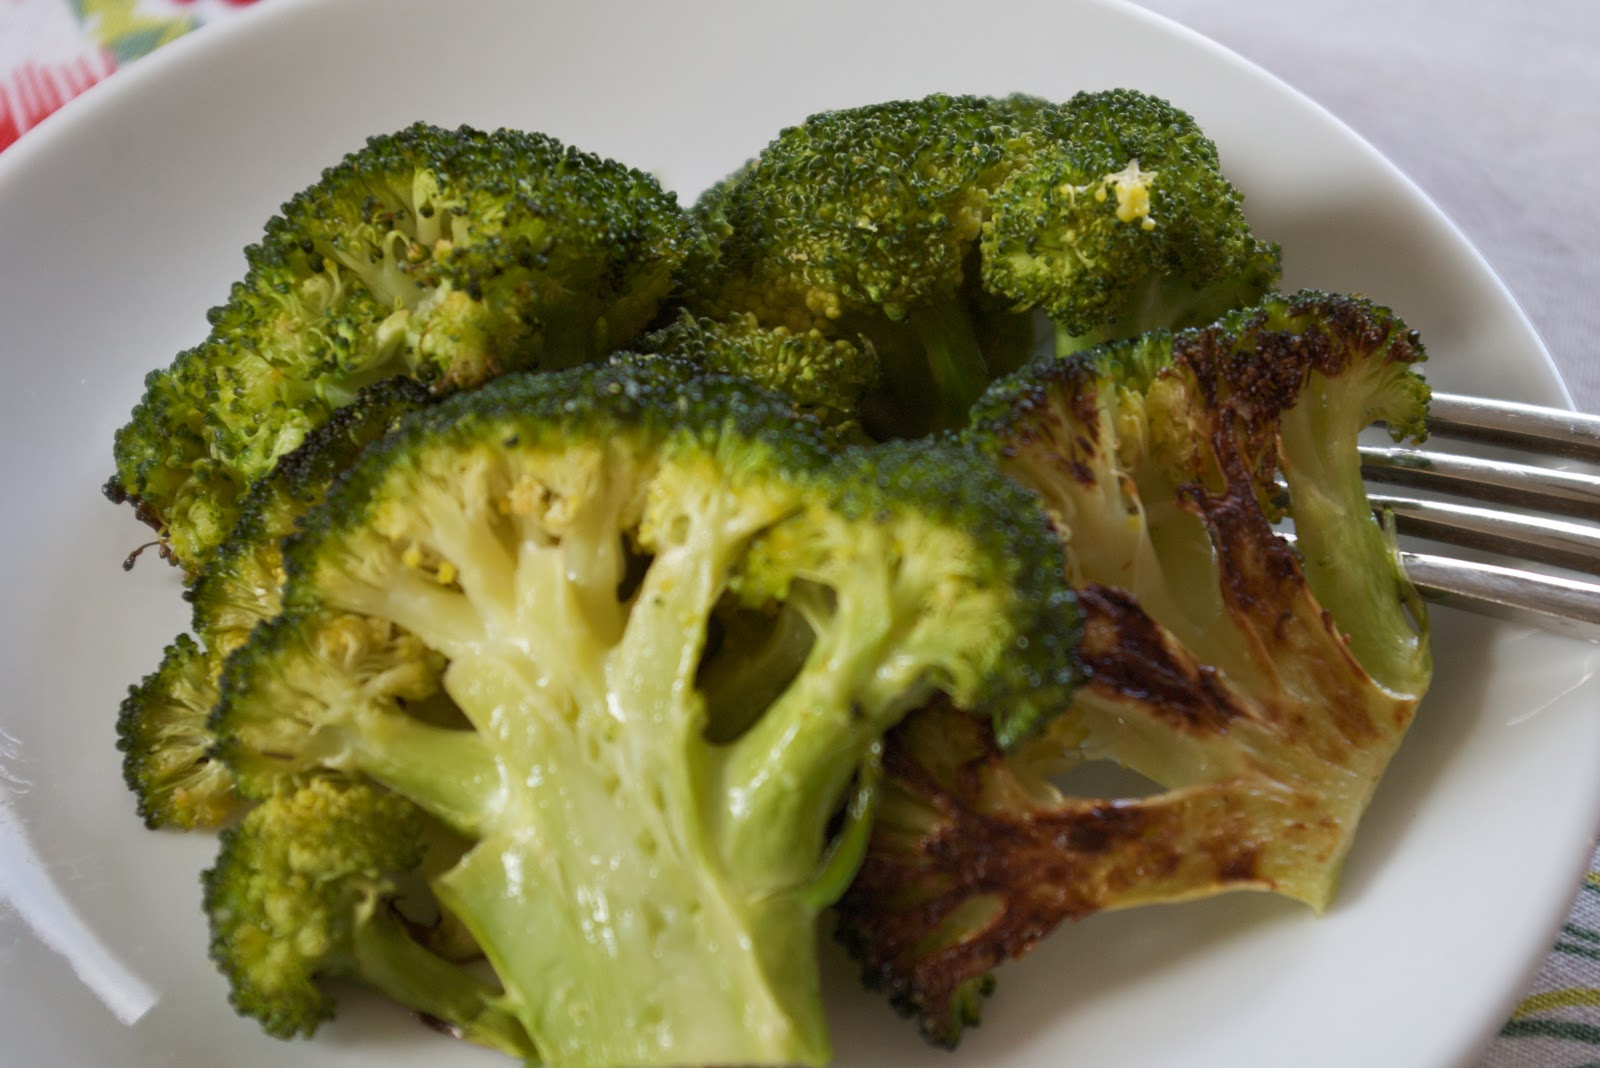 FoodWise Nutrition: Roasted Broccoli and Brussels Sprouts